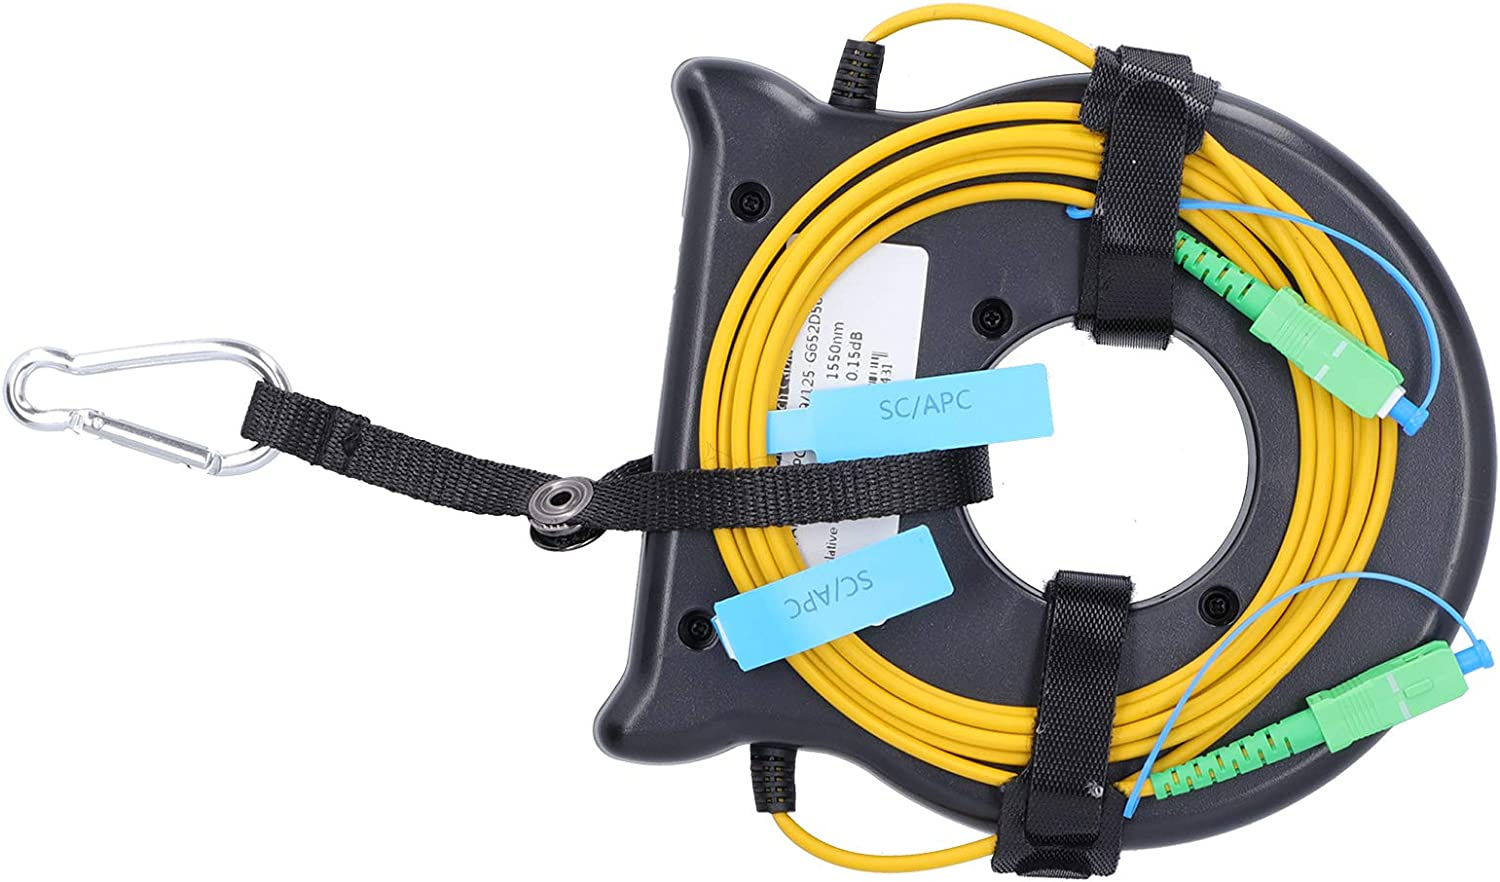 OTDR Extension Cord,1640.4ft OTDR Launches Cable Box SC//for APC-SC//for APC Optical Fiber Test Waterproof Dustproof with Stable Performance